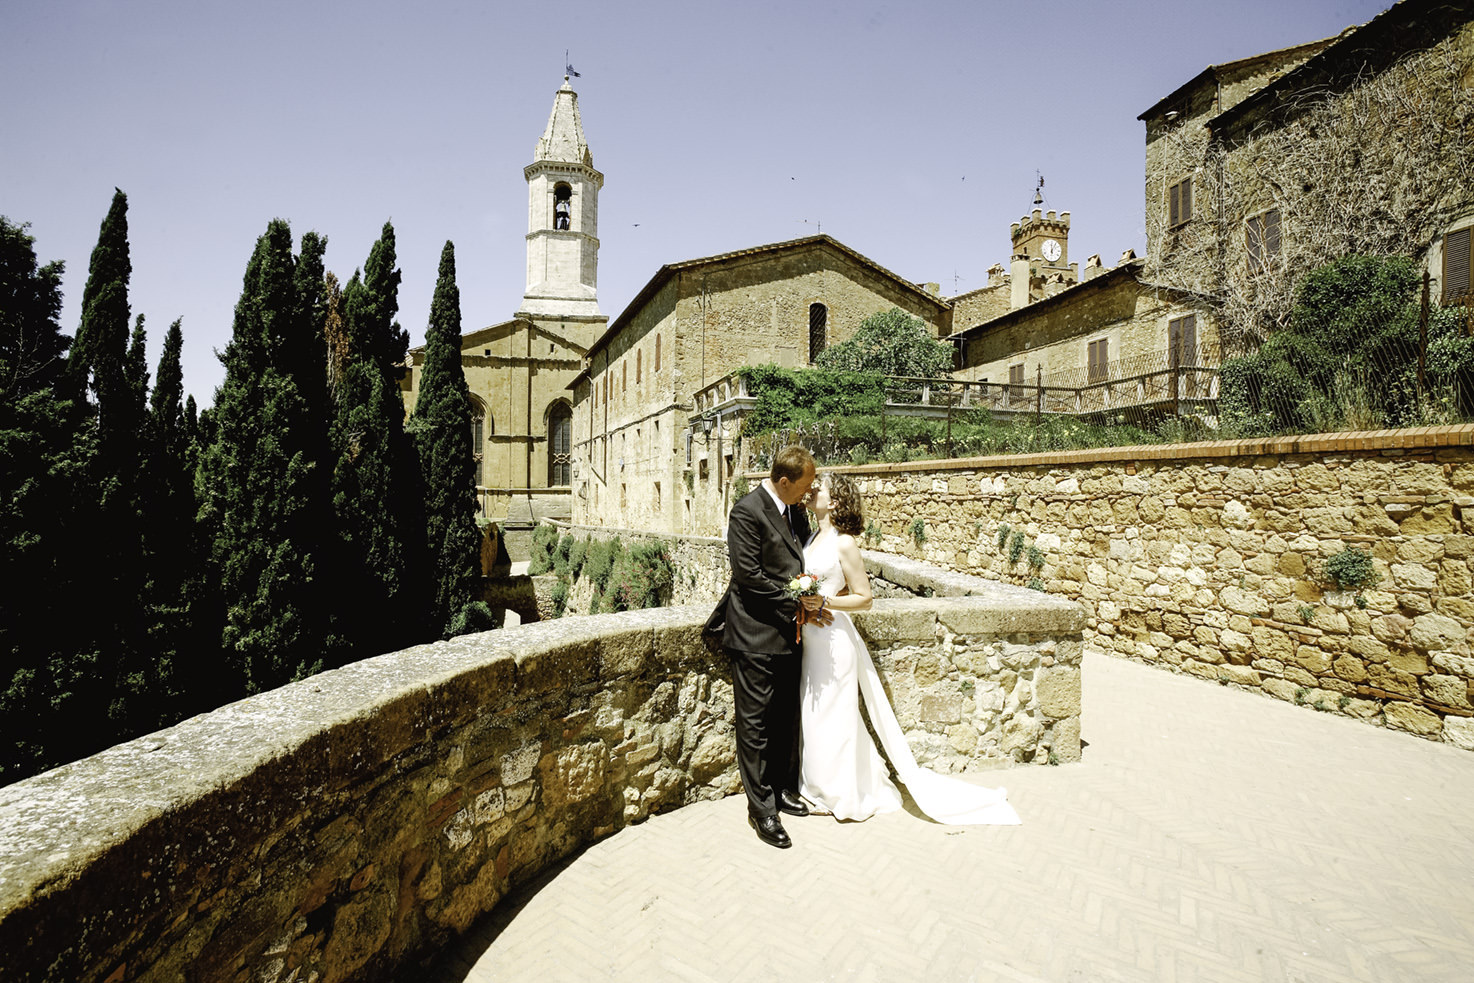 Bridal couple in the old town of Pienza